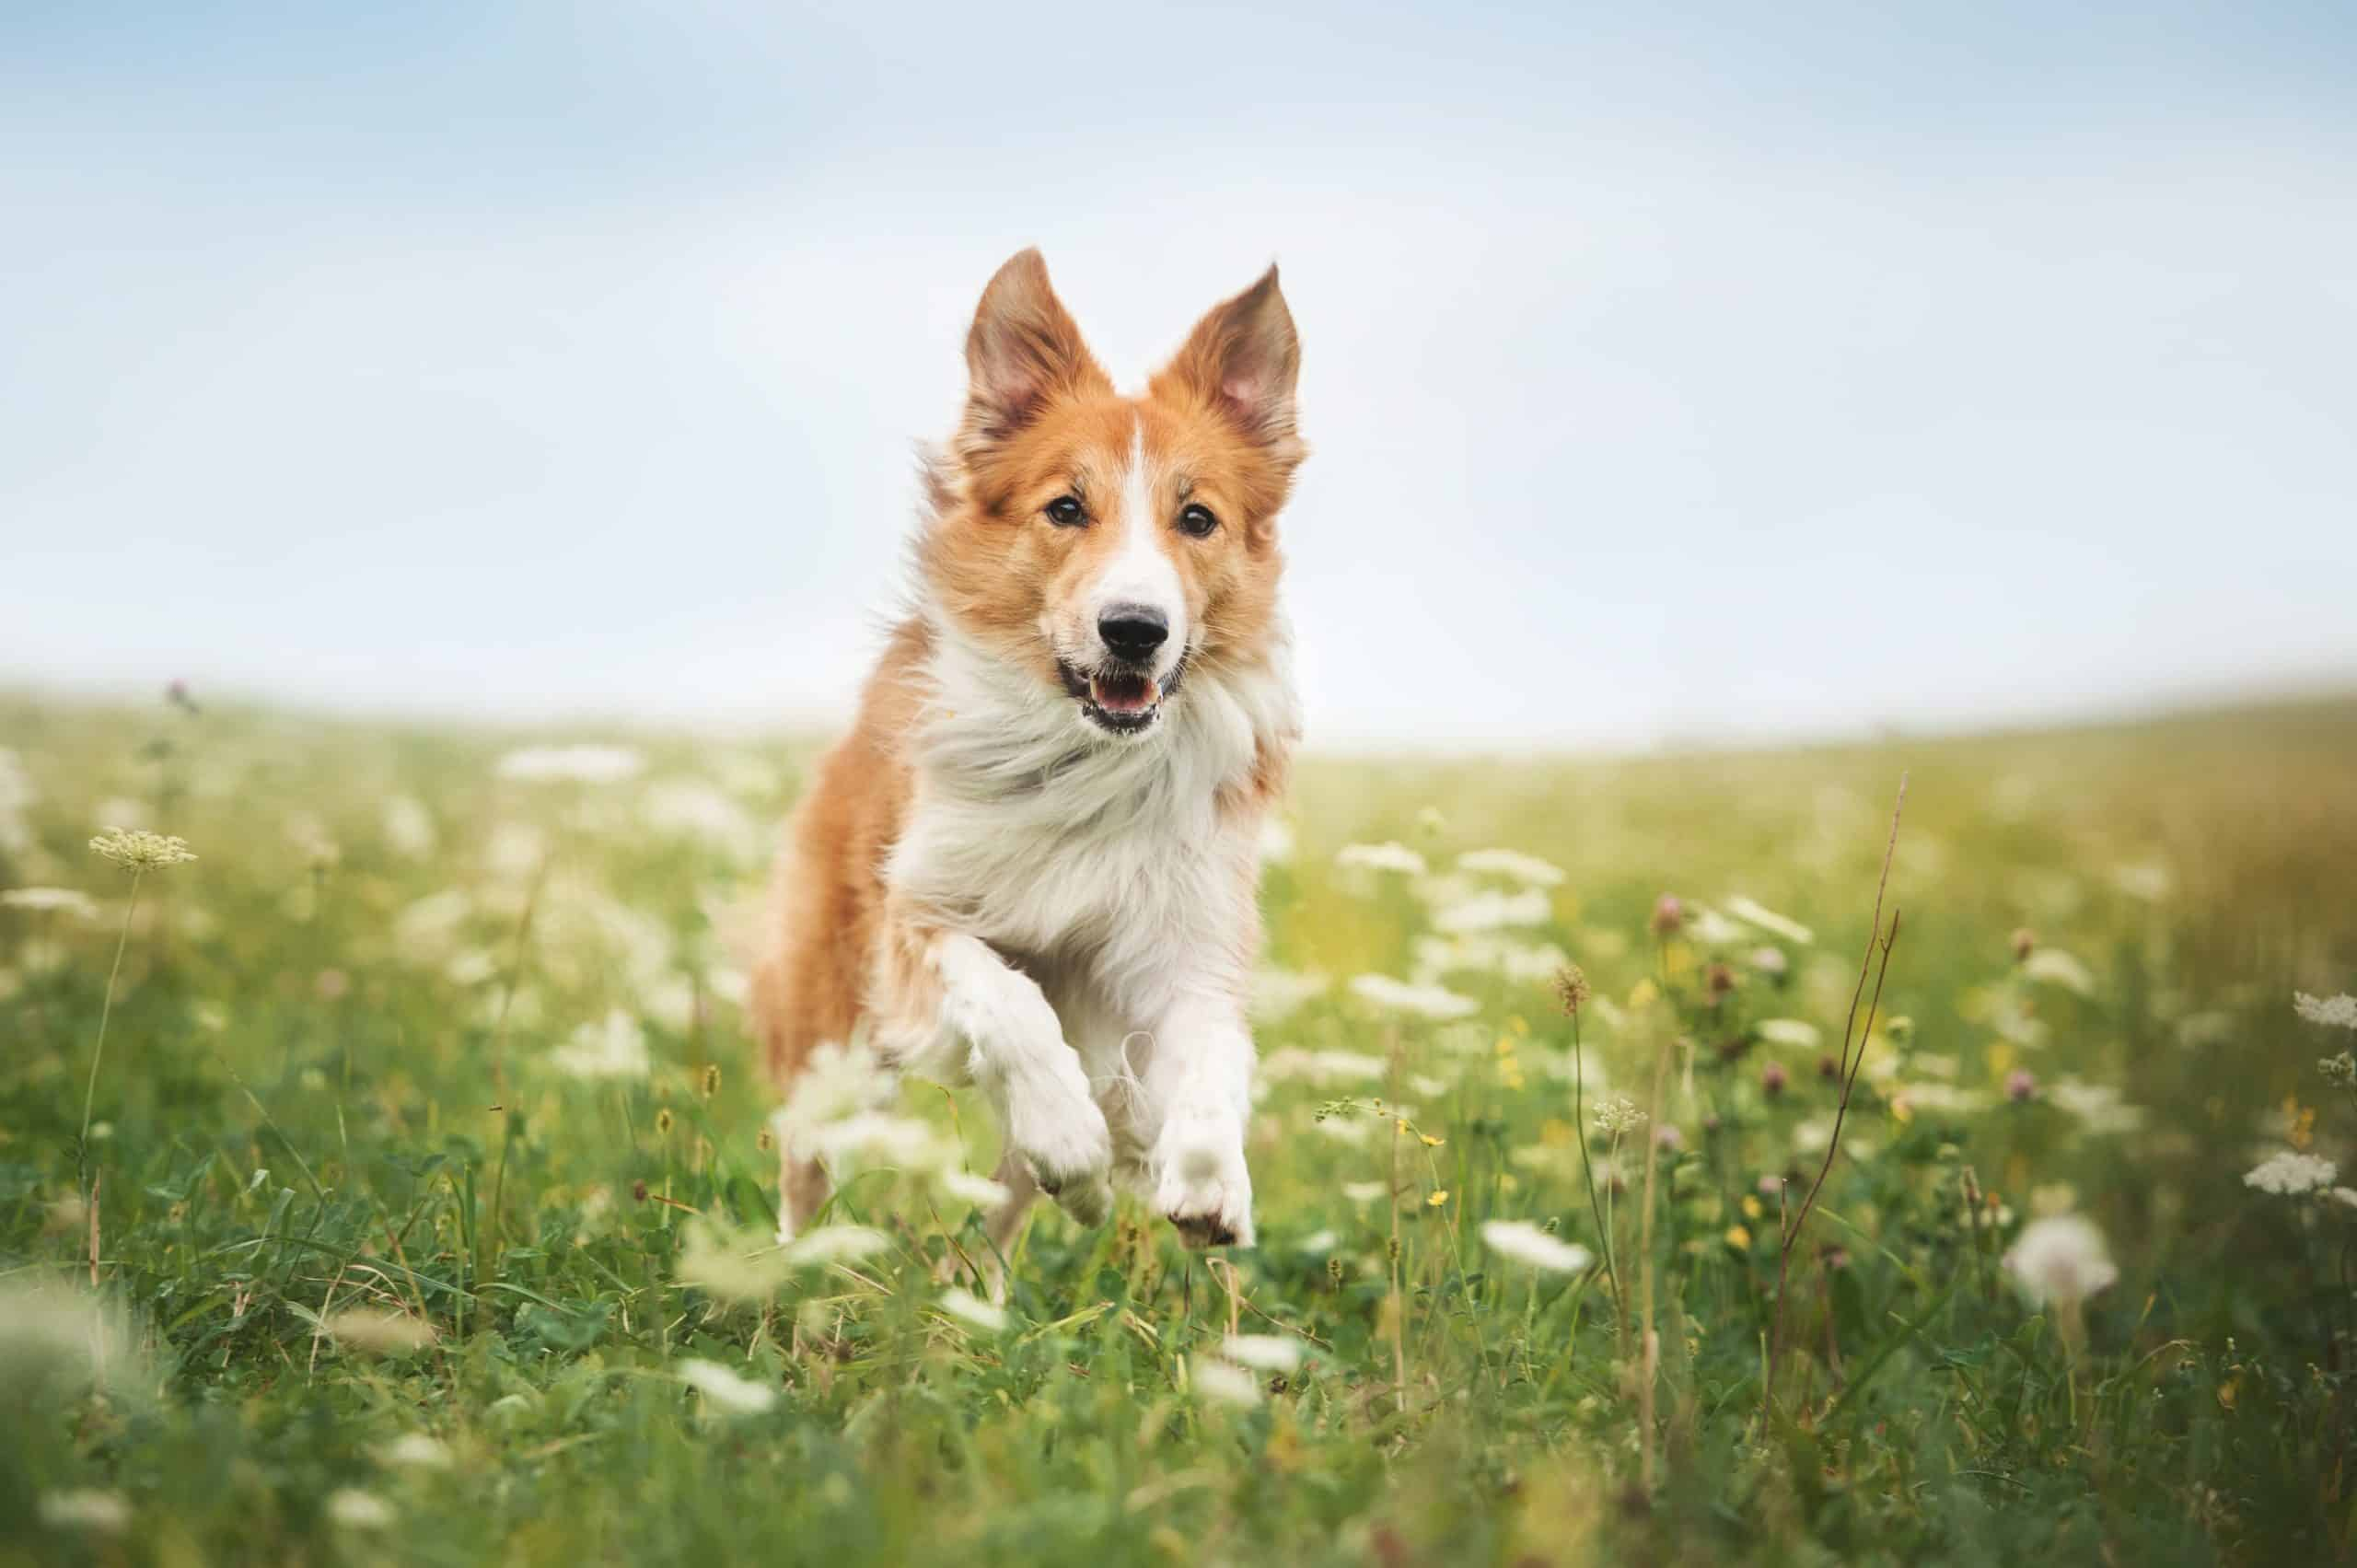 Happy red border collie. Genetics and breed may influence temperament, but your dog's environment also plays a major role.